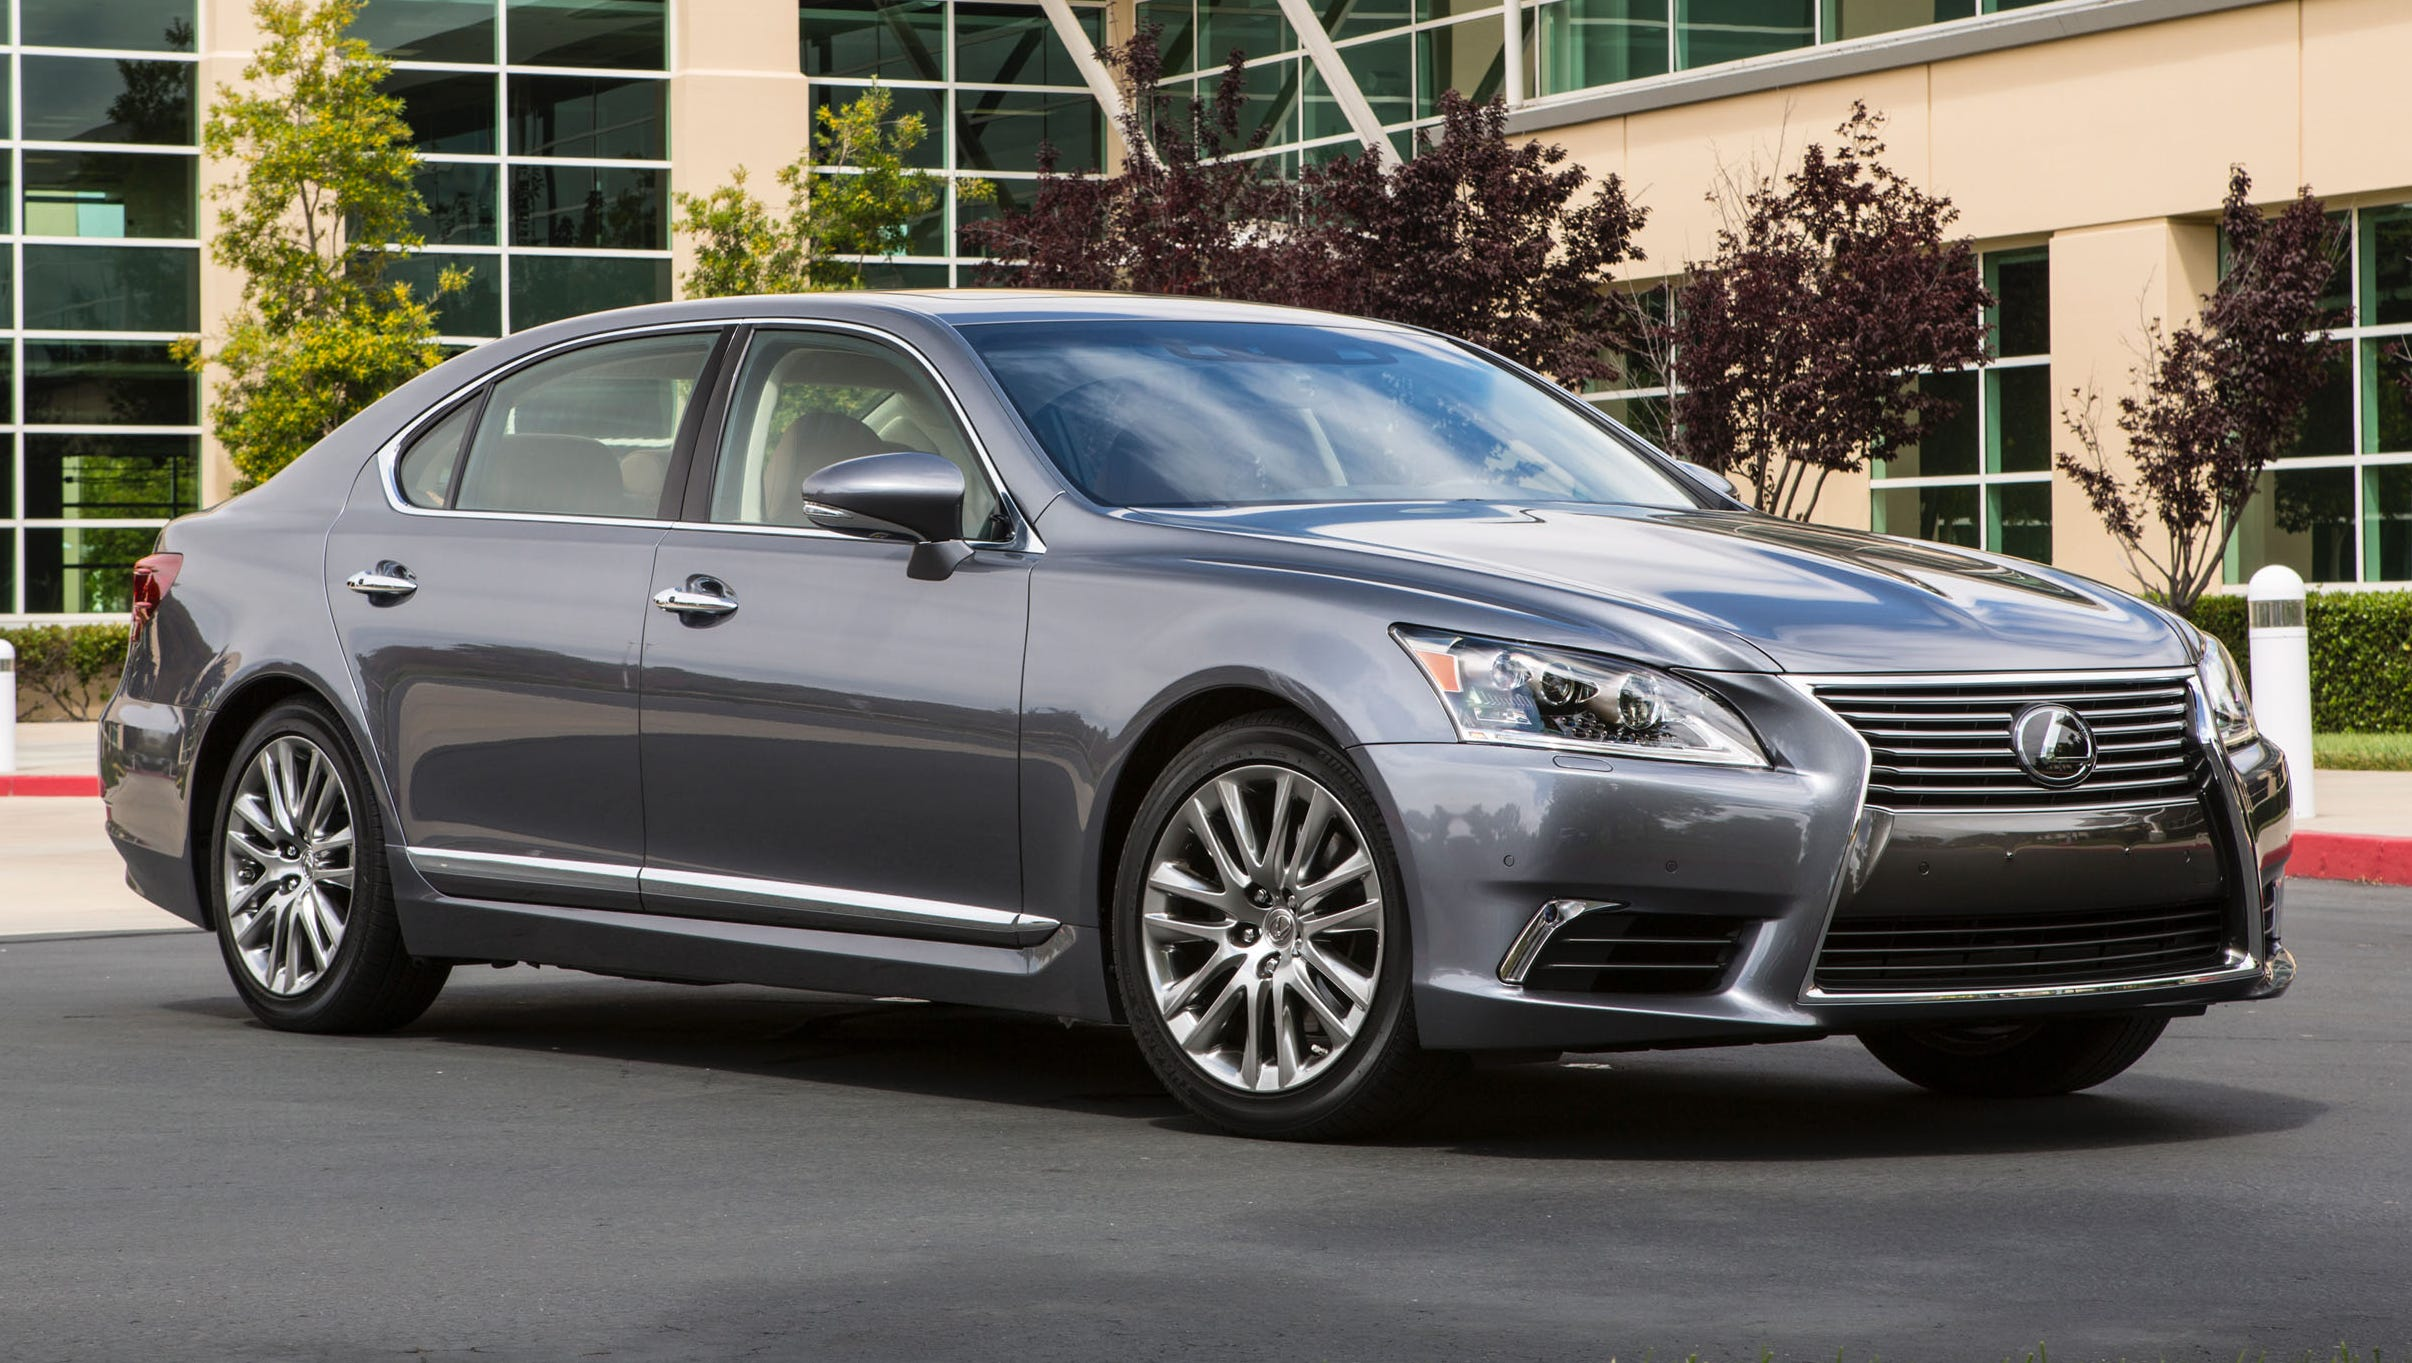 This year's Edmunds.com Top 10 Best Cars for Short Drivers includes the Lexus LS 460 starting at $72,900, making it the second most expensive car on the list.